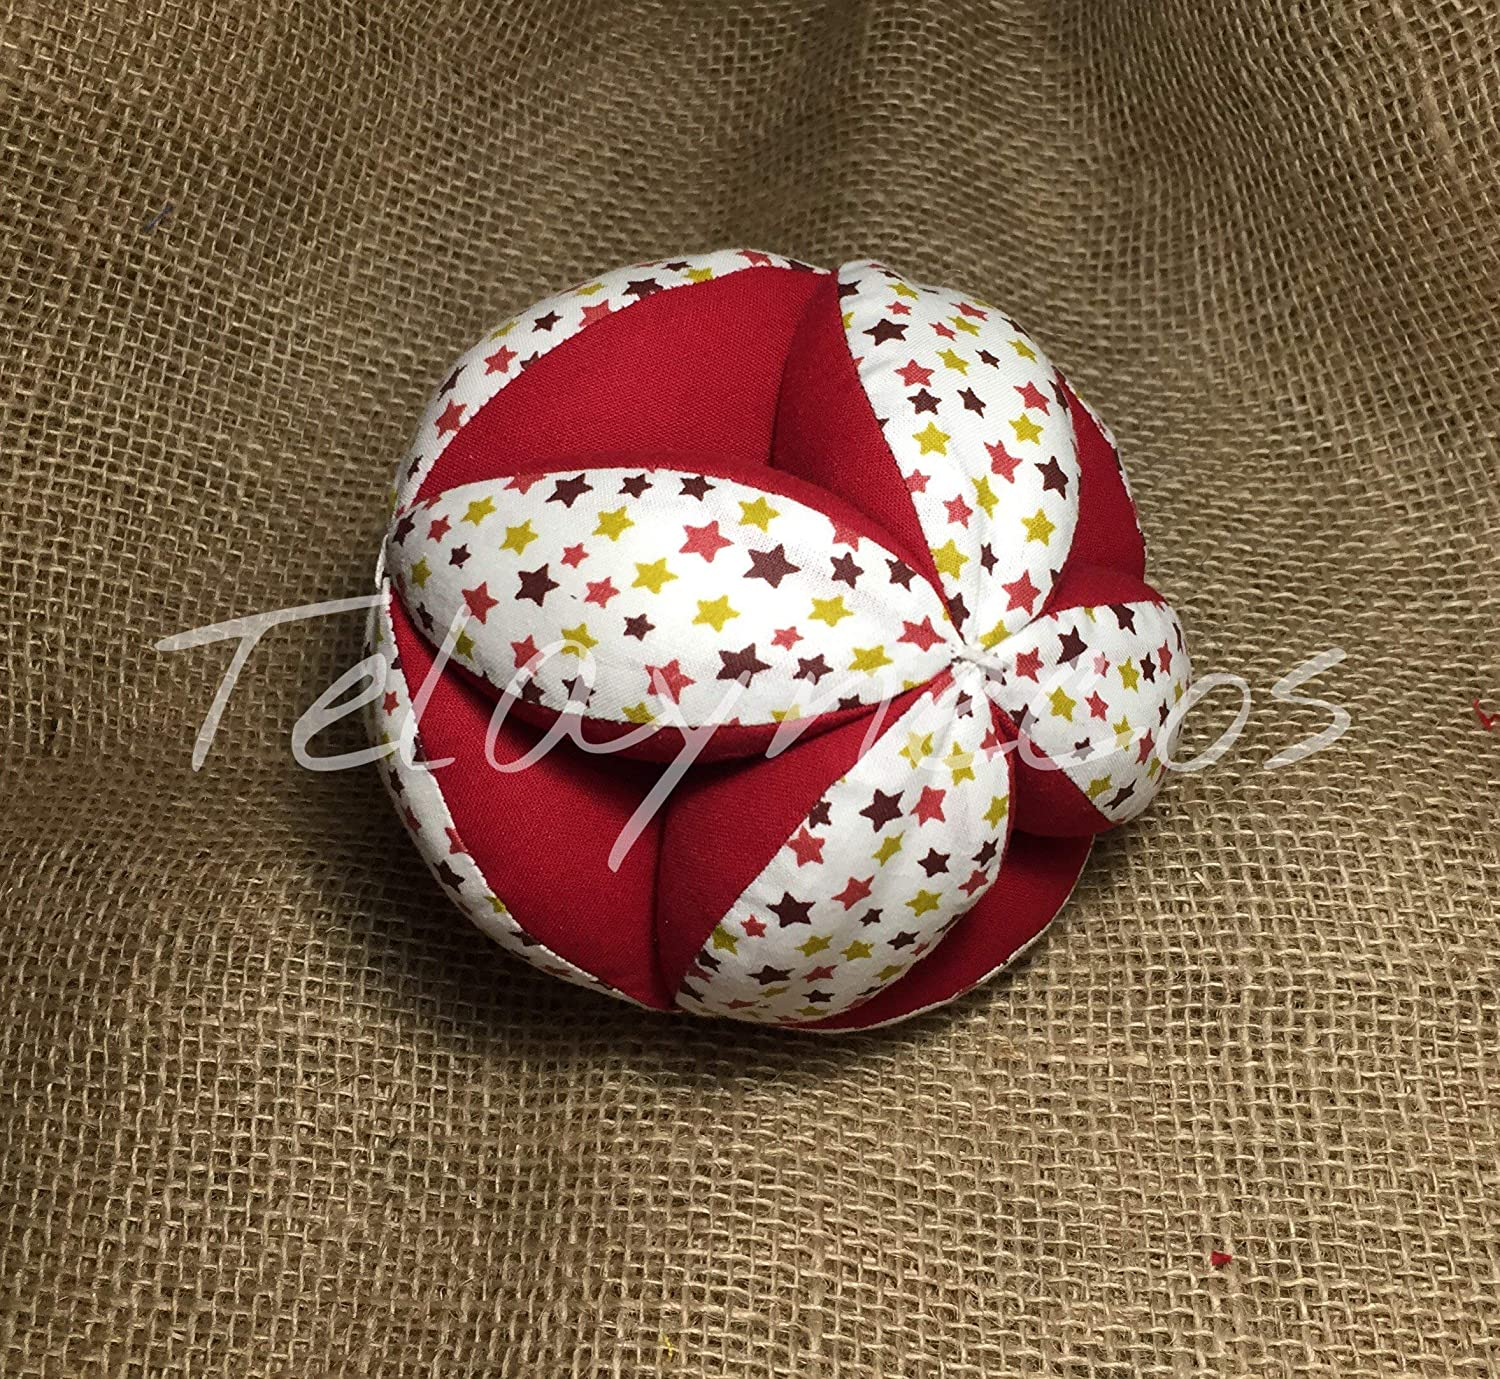 Pelota Montessori estrellas granate: Amazon.es: Handmade